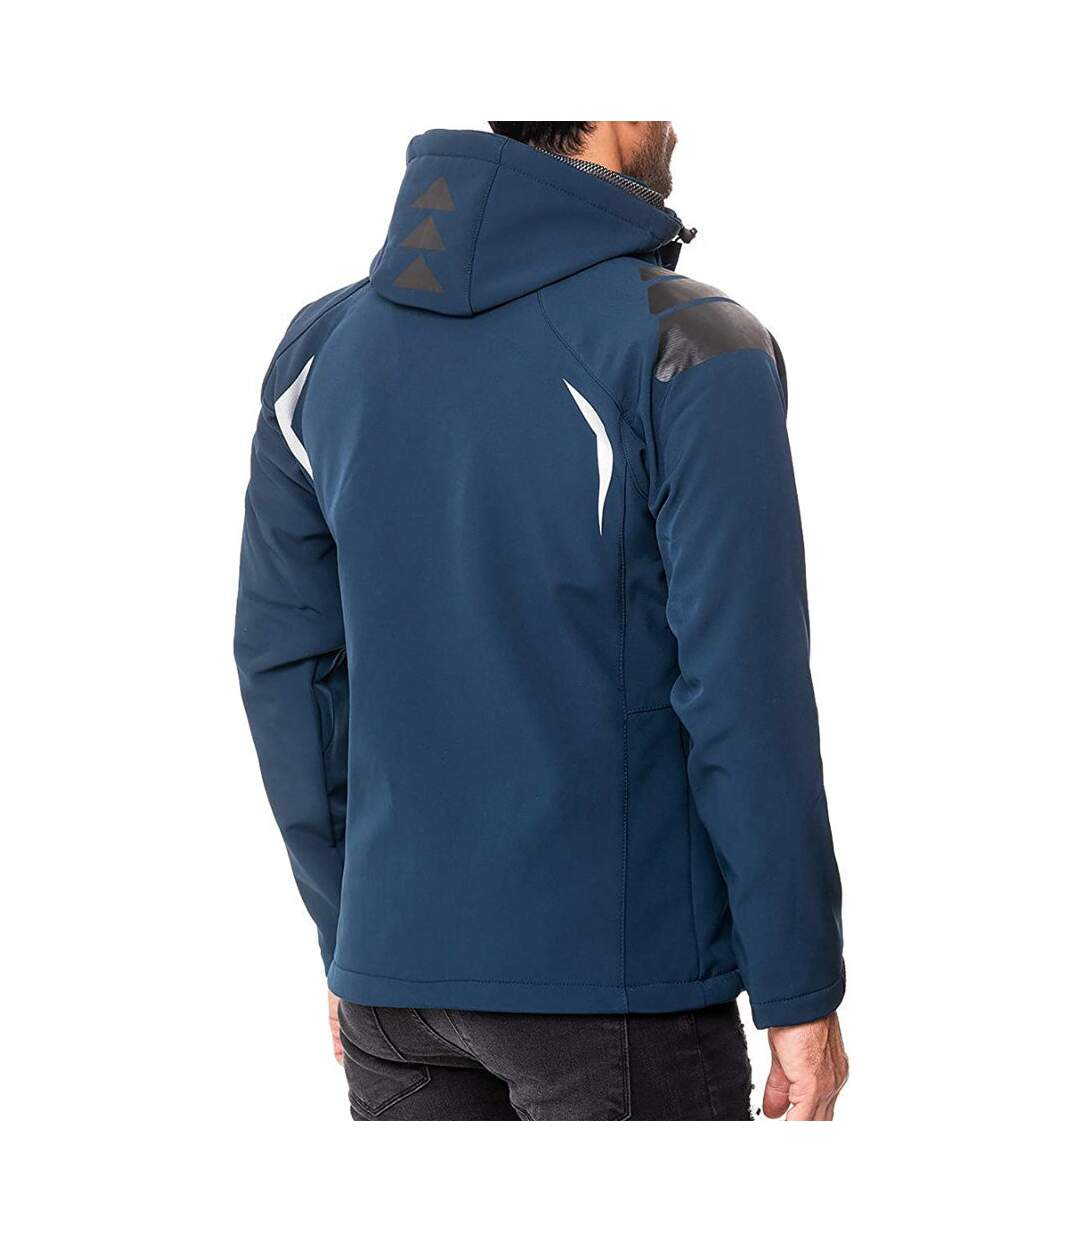 Veste softshell Geographical Norway Veste Techno bleu marine